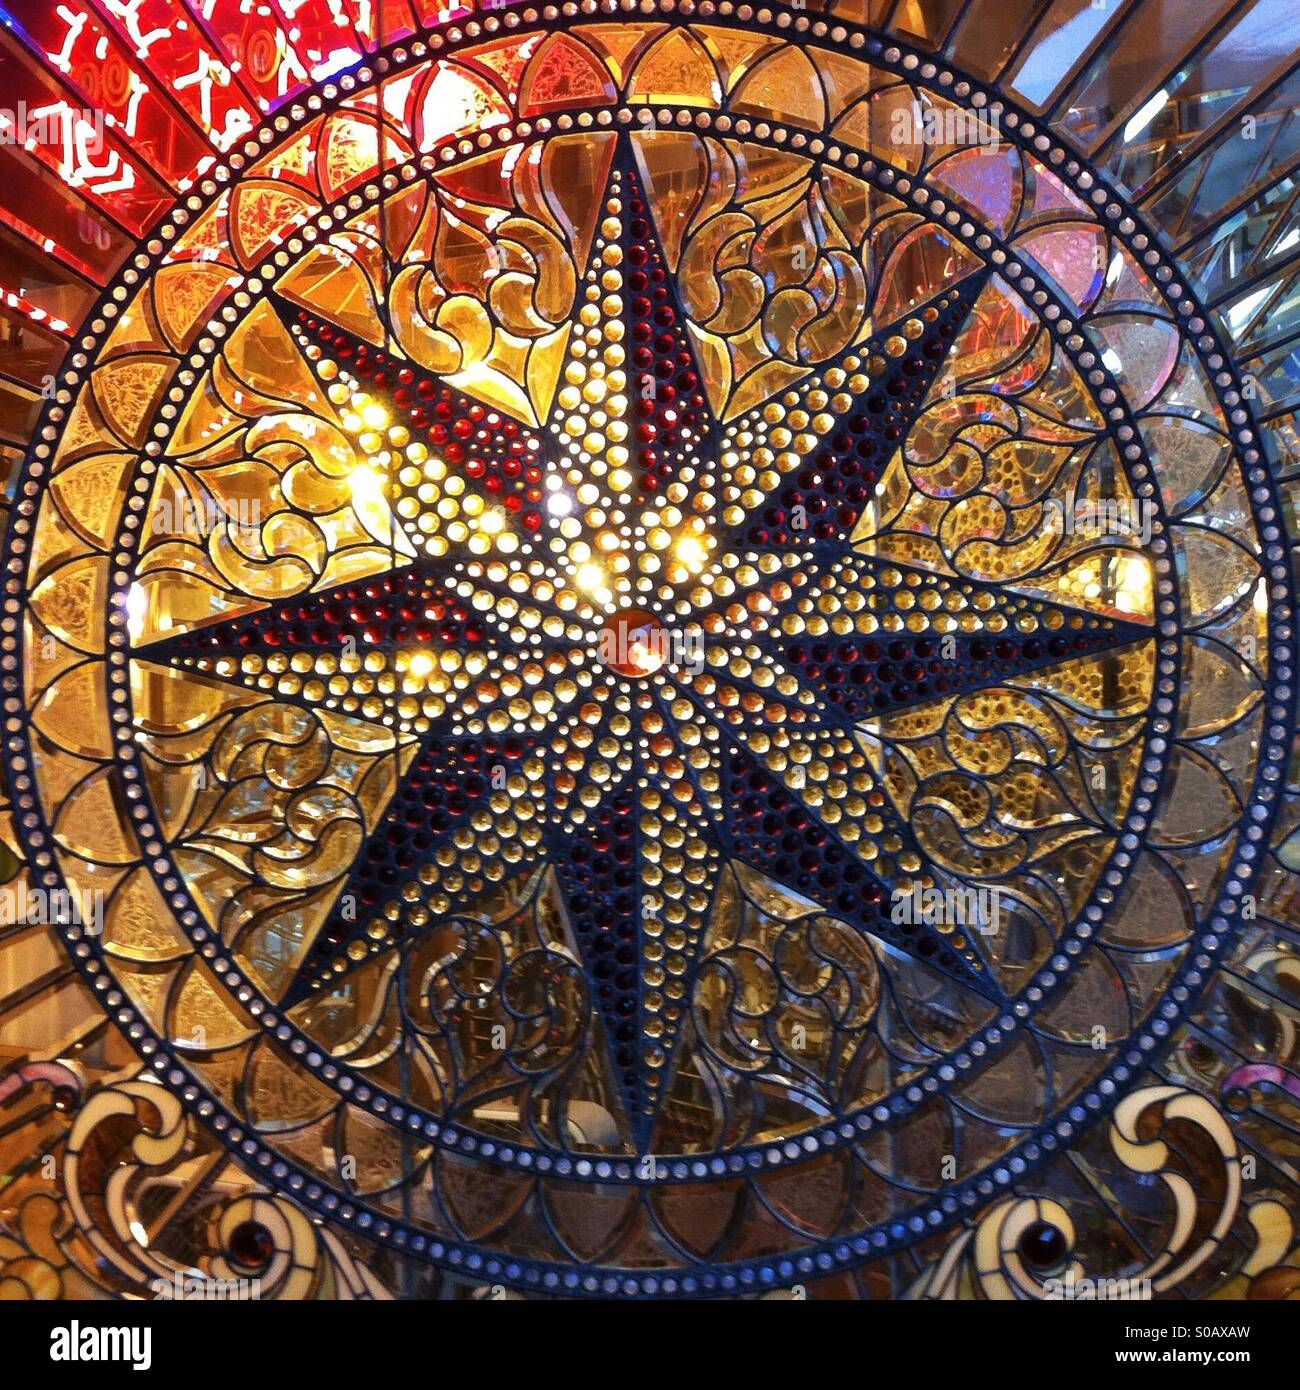 Glass Compass Rose Patterns : Stained glass compass rose in round cartouche stock photo